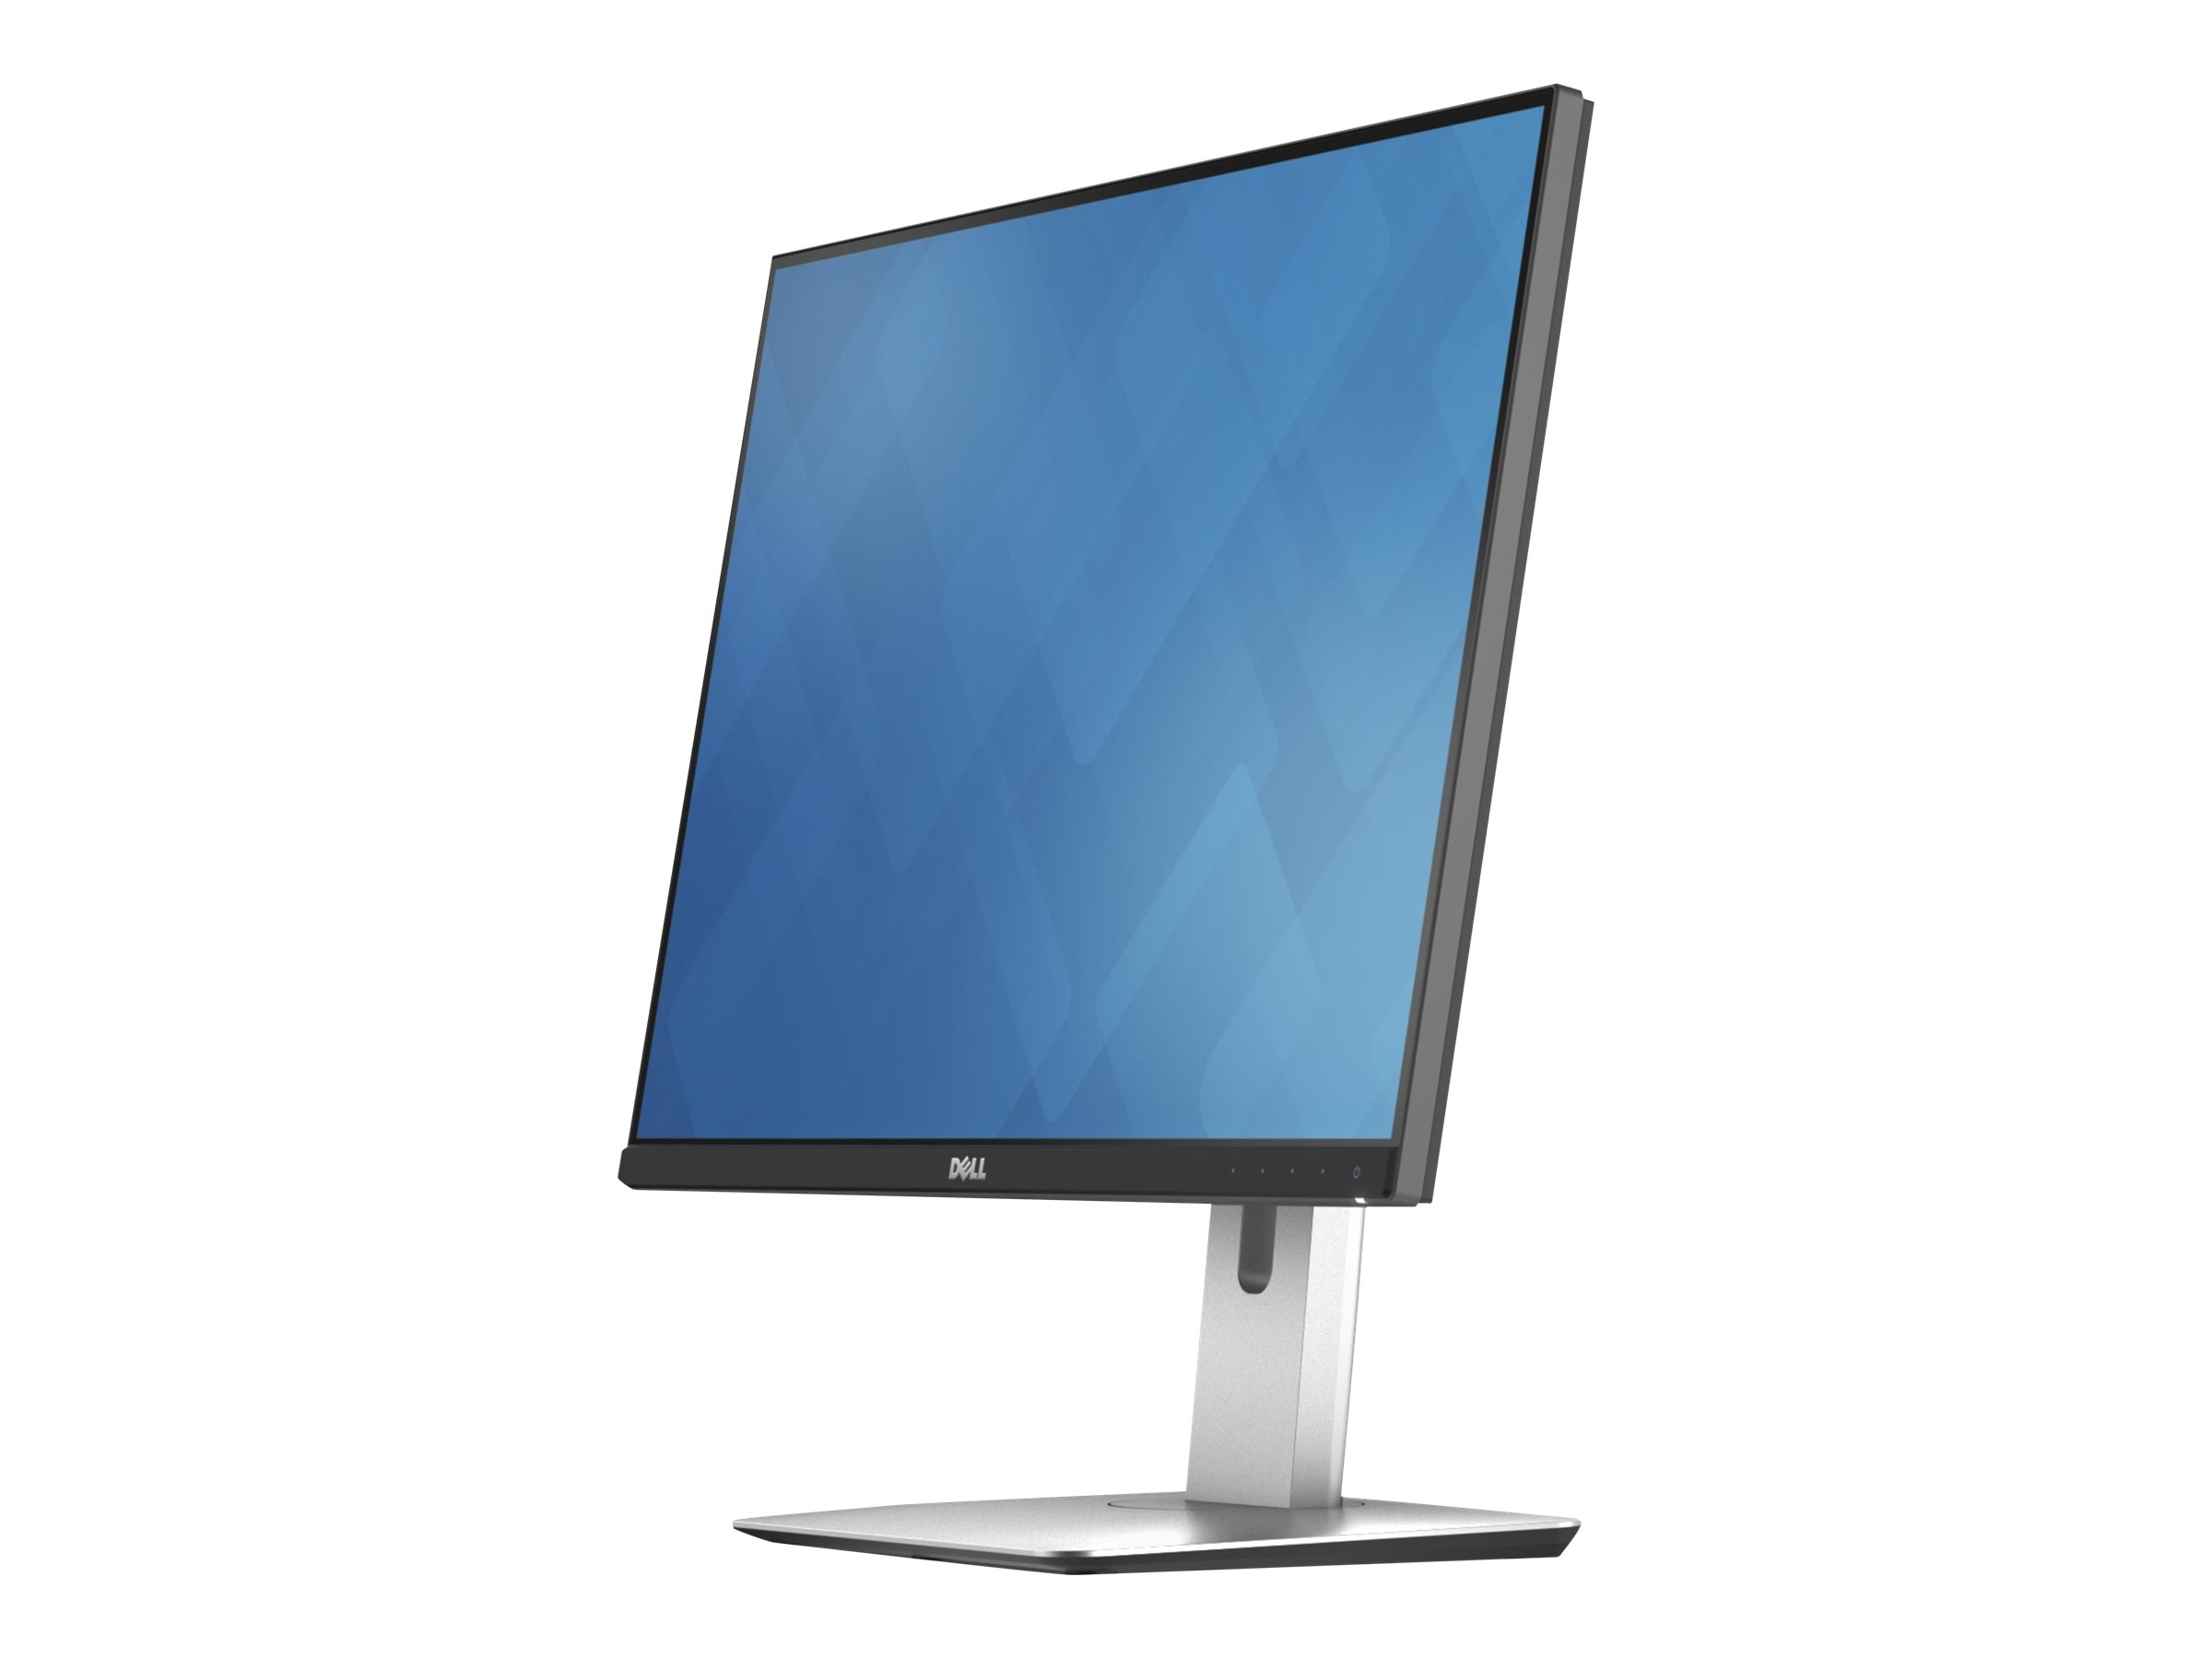 Dell 24.1 U2415 LED-LCD Monitor, Black, U2415, 17922503, Monitors - LED-LCD